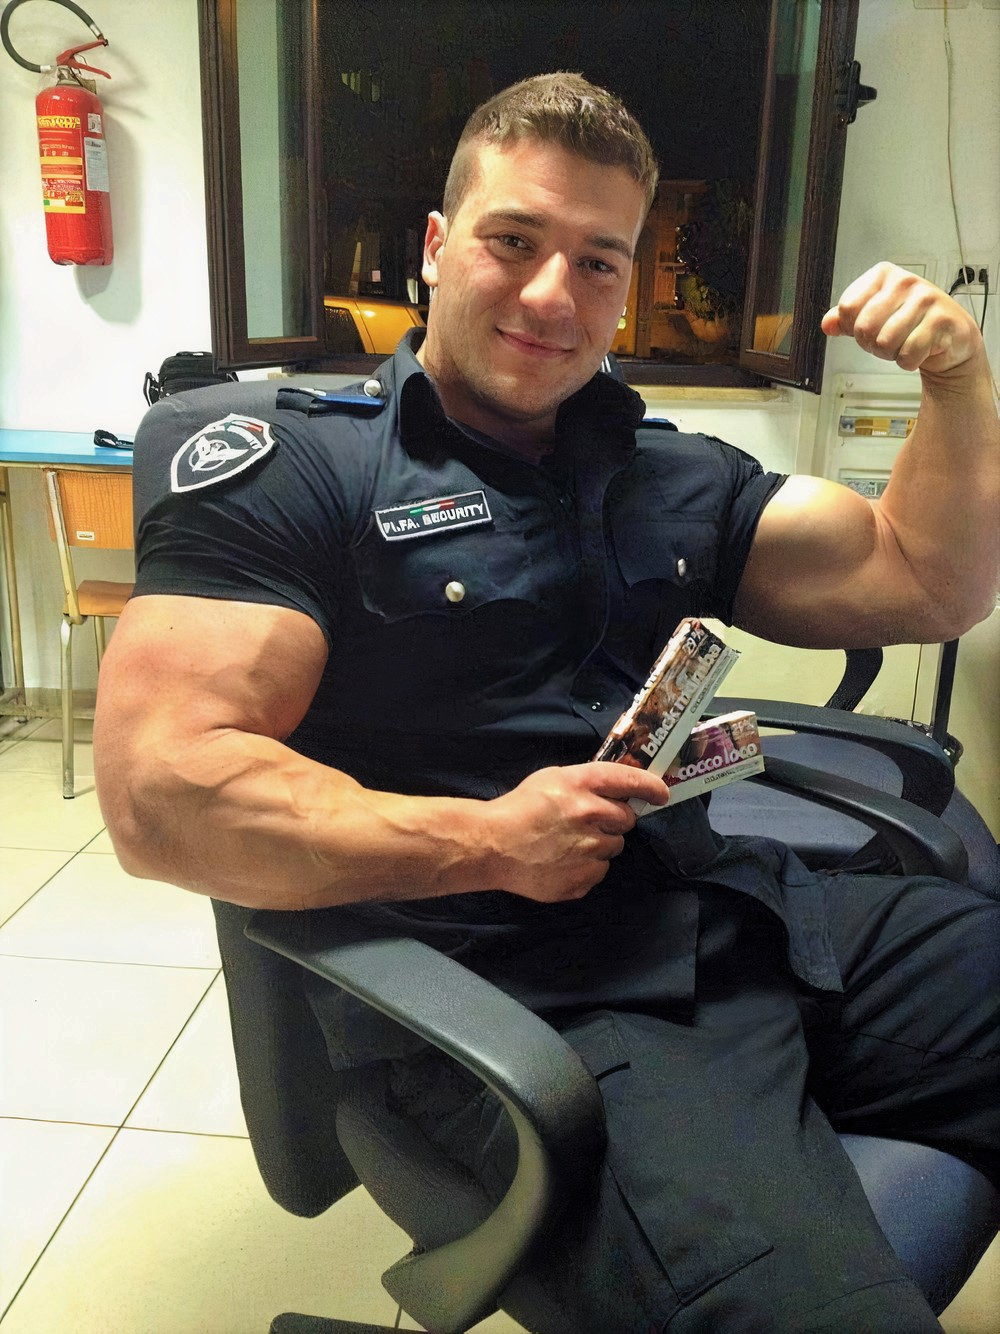 cute-strong-beefy-huge-swole-muscle-biceps-italian-mall-security-worker-beautiful-uniformed-policeman-smiling